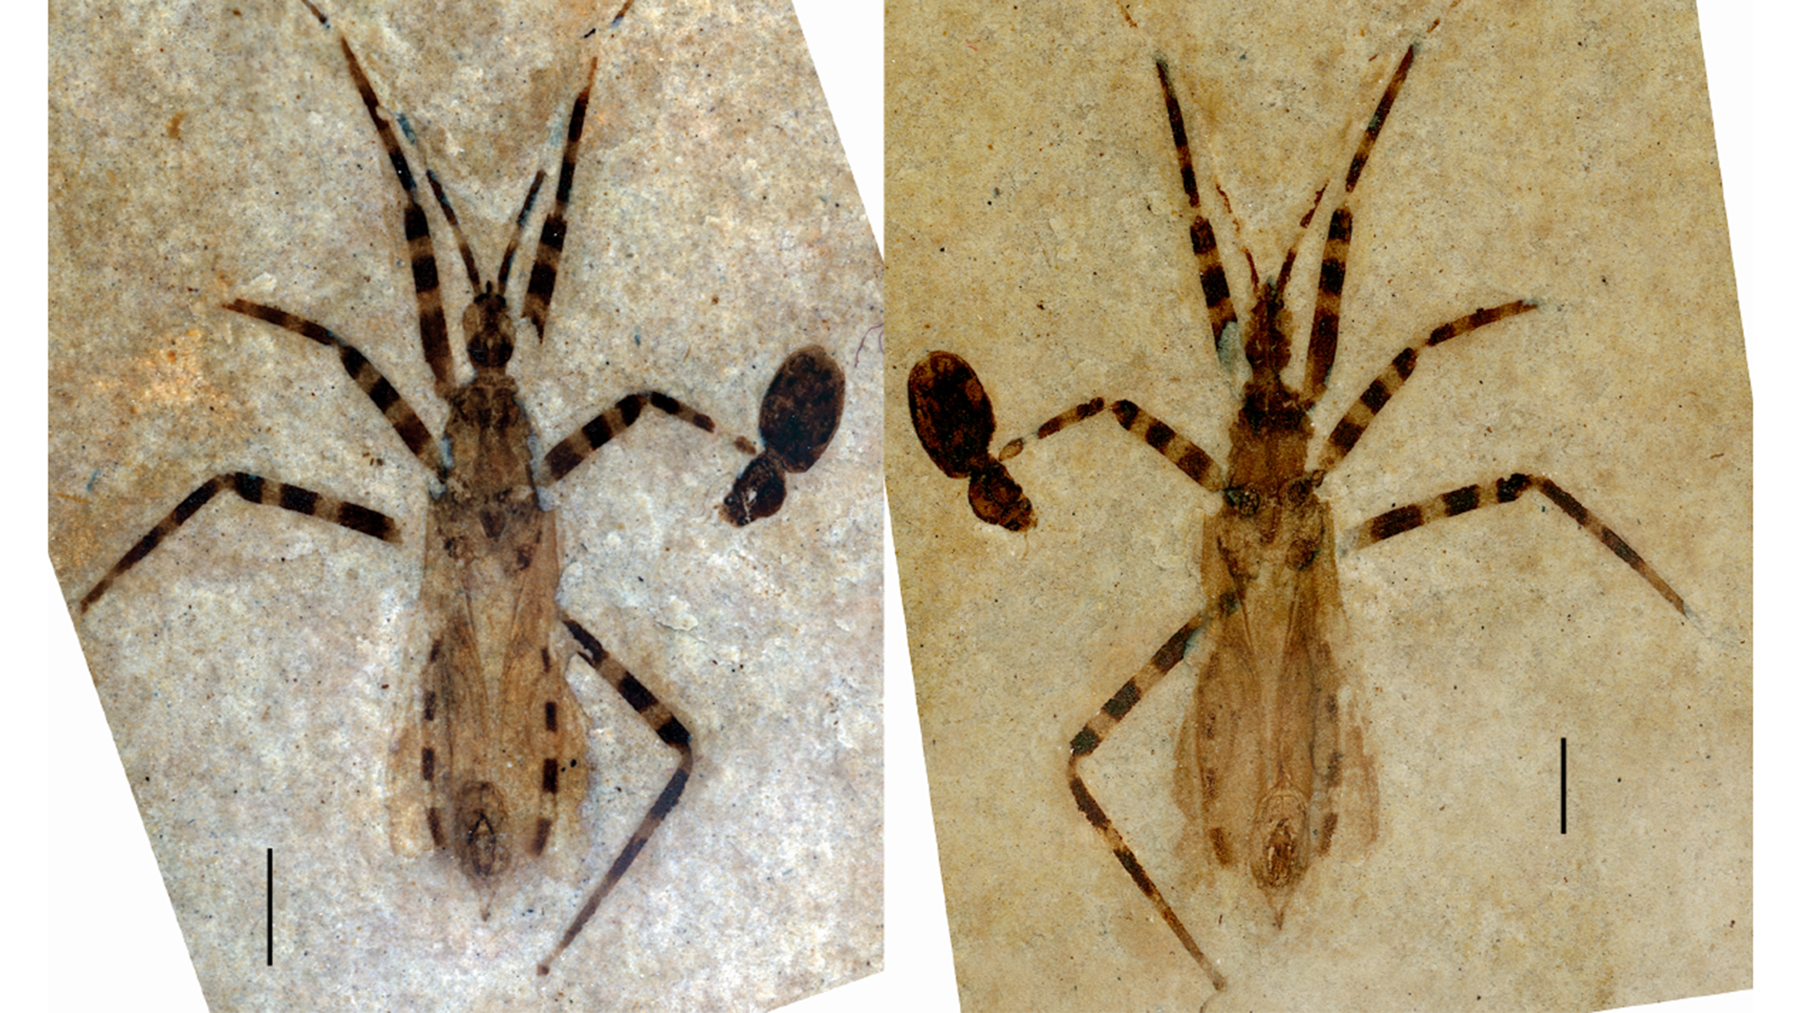 Assassin bug fossil. Photo by Daniel Swanson